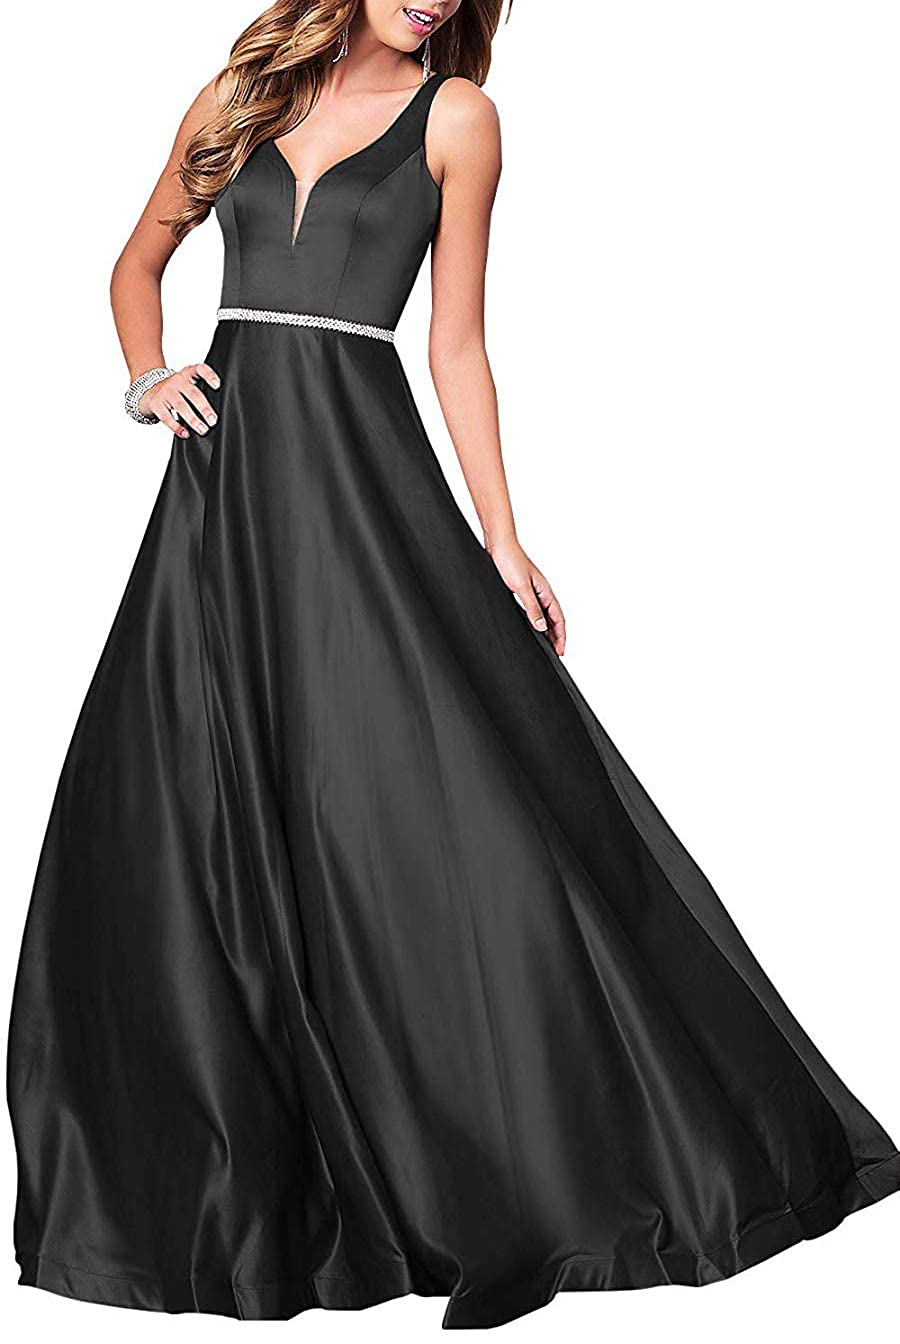 Black Deep VNeck Long Satin Prom Dress with Beaded Pocket Formal Evening Party Gown